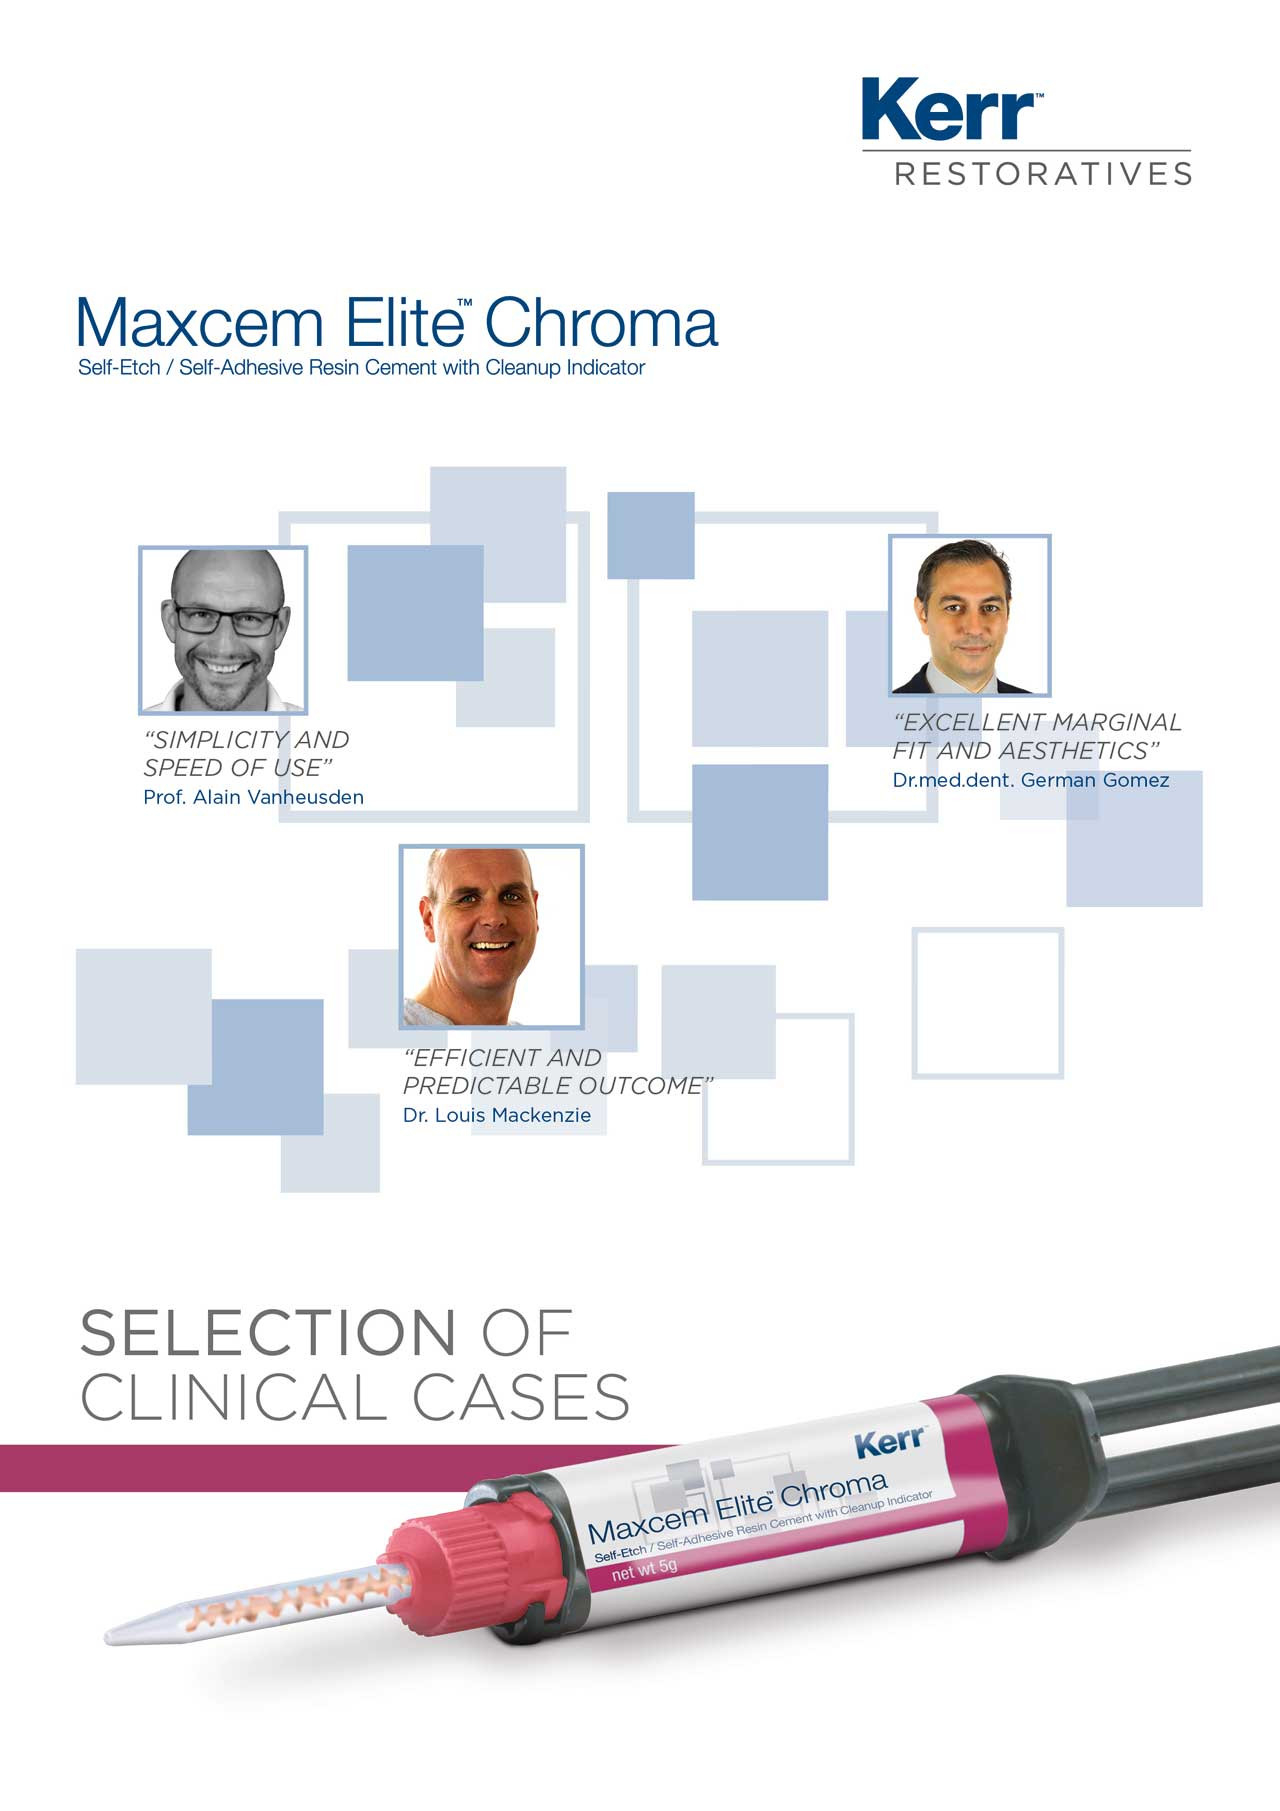 Maxem-Elite-Chroma-Clinical-Cases